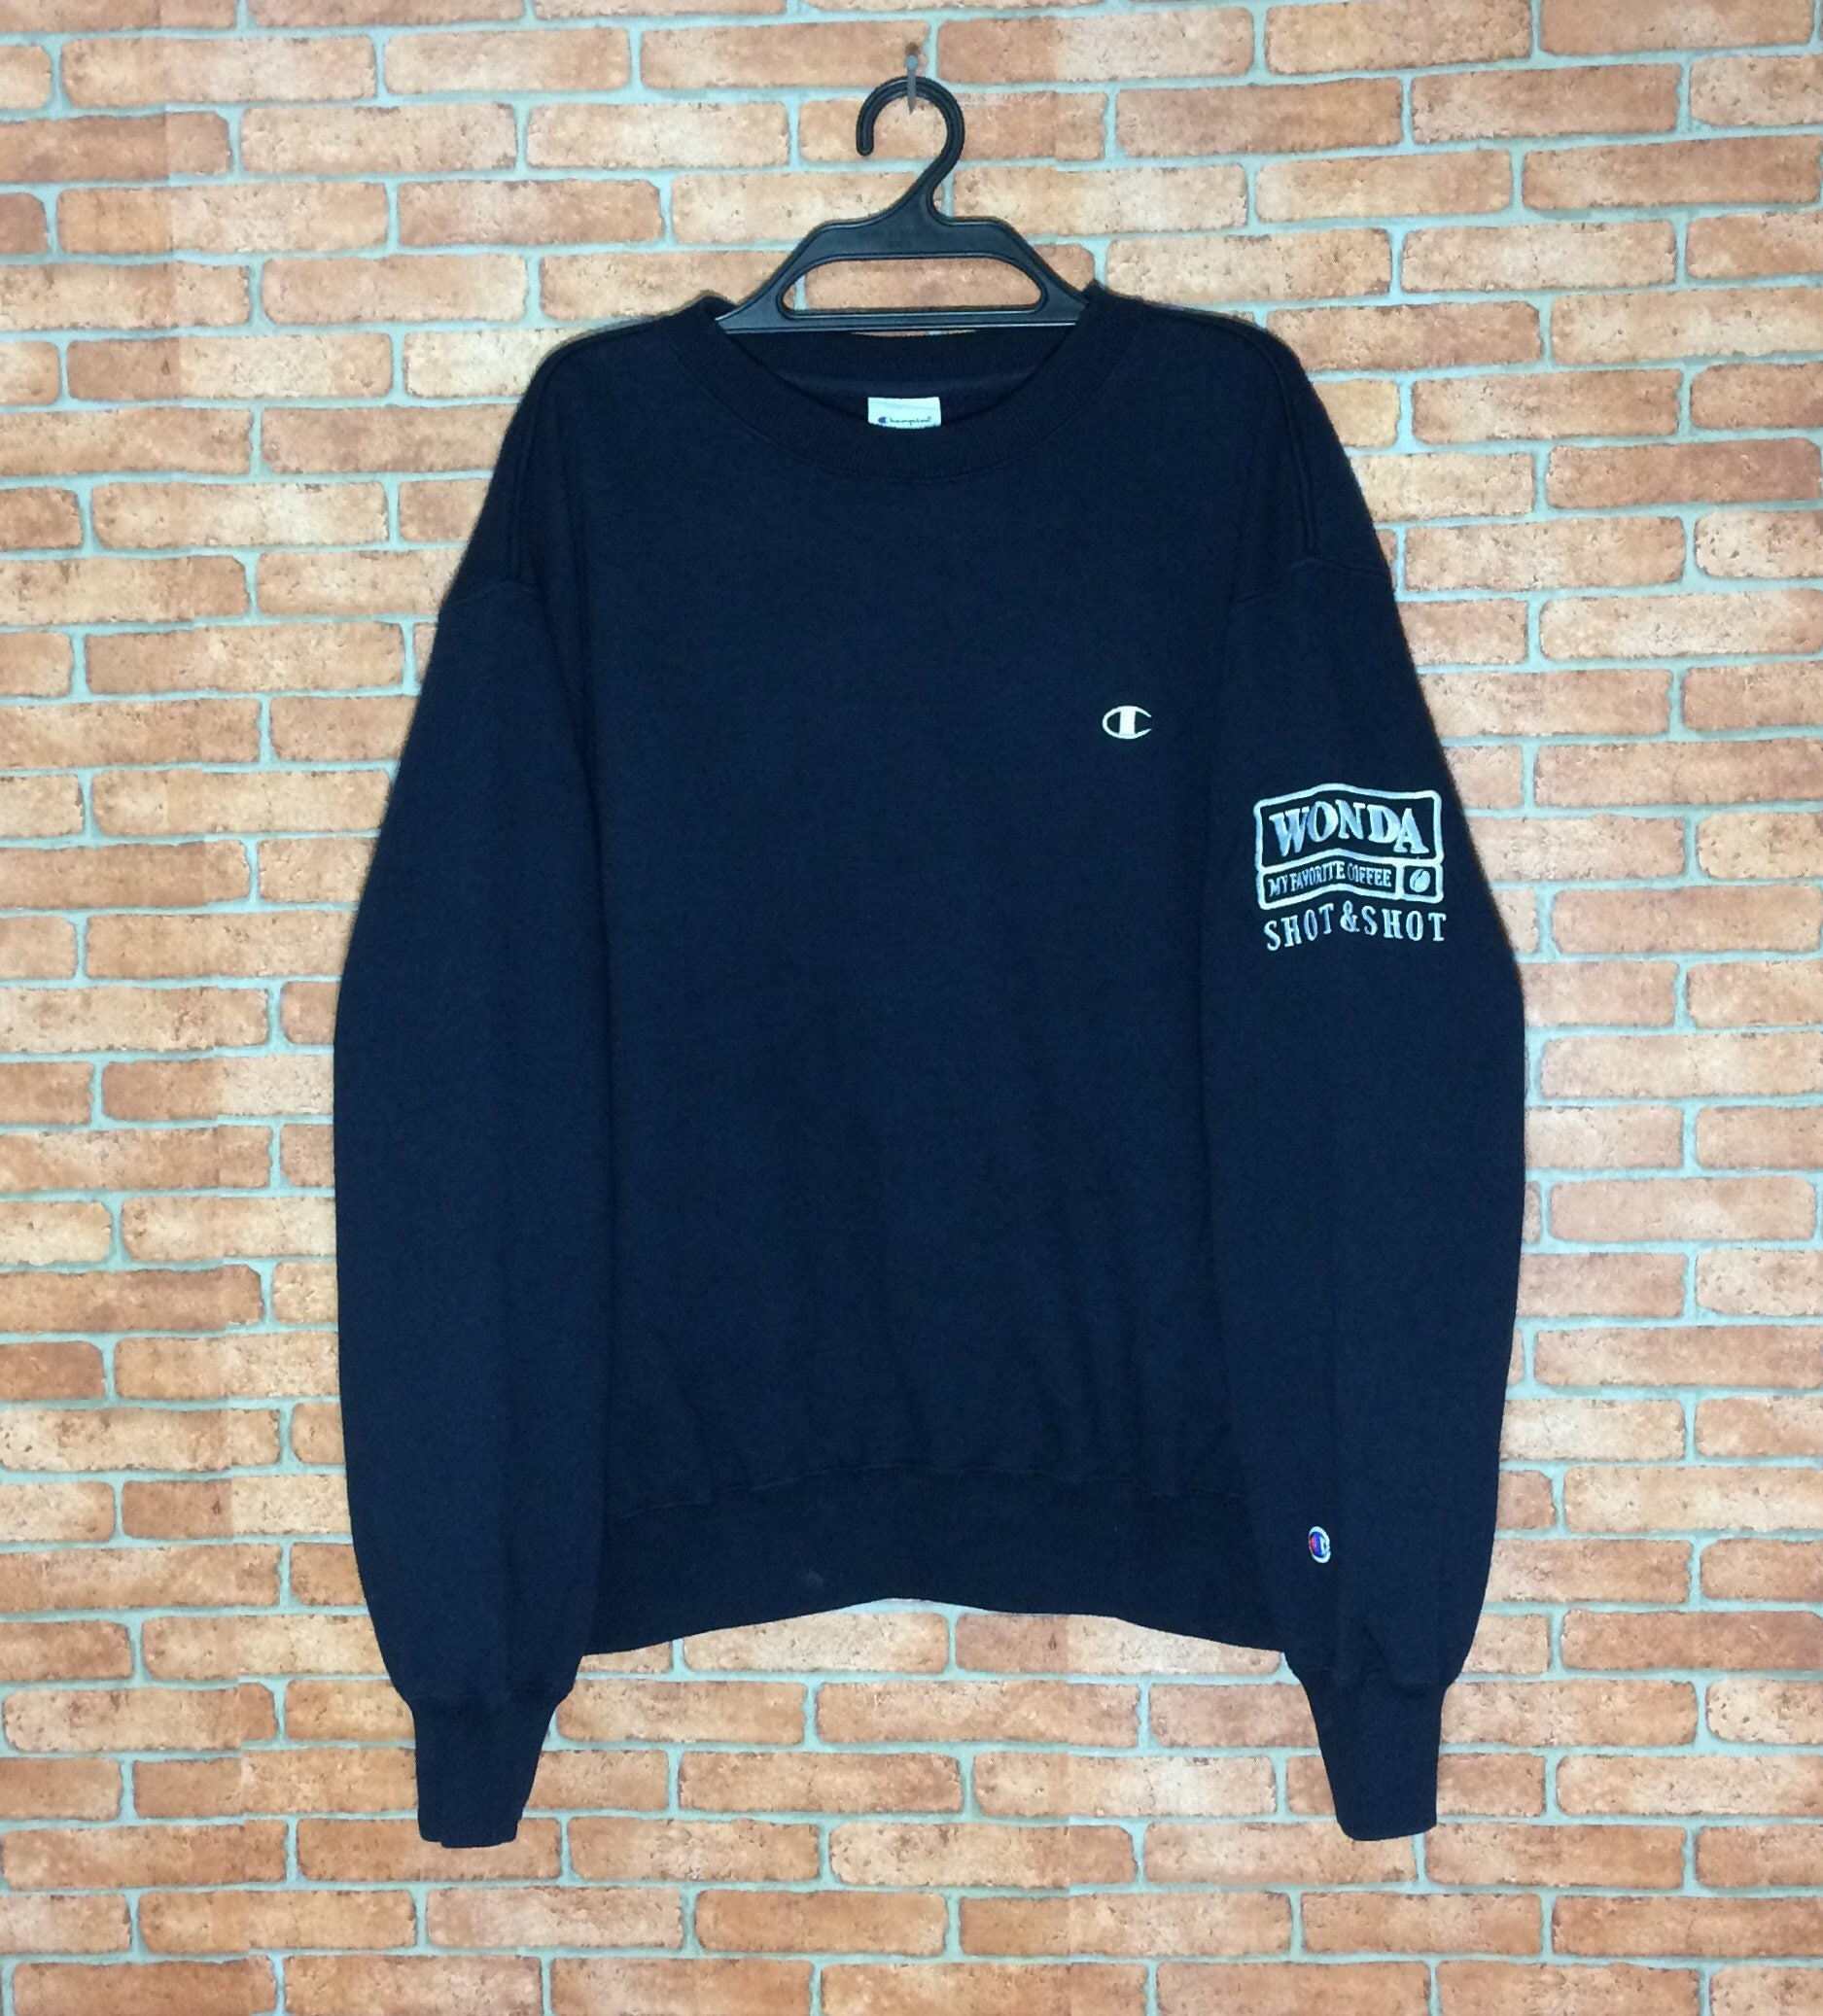 Rare!!! Vintage Champion Spell out Embroidery sweatshirt Pull over Vtg Crewneck Champion Product M L size Jacket BwkDds